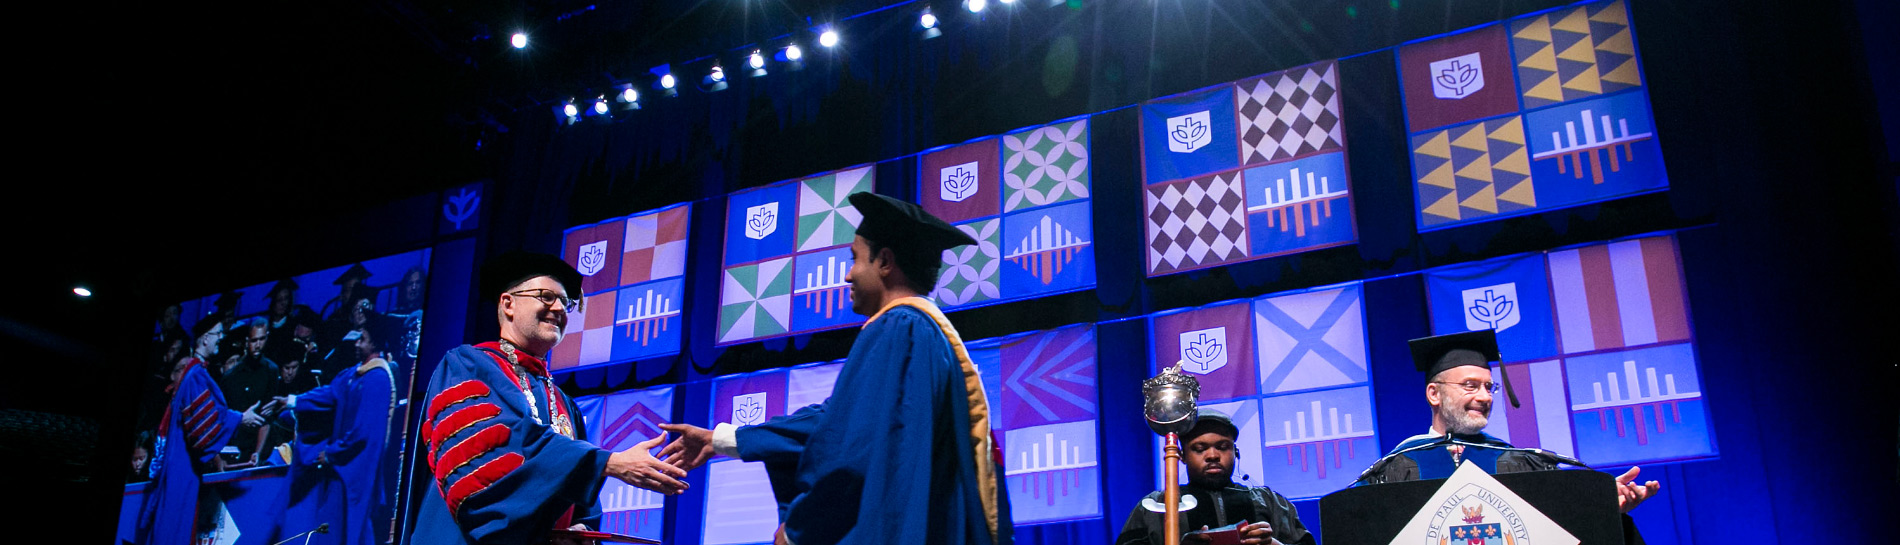 DePaul University Commencement